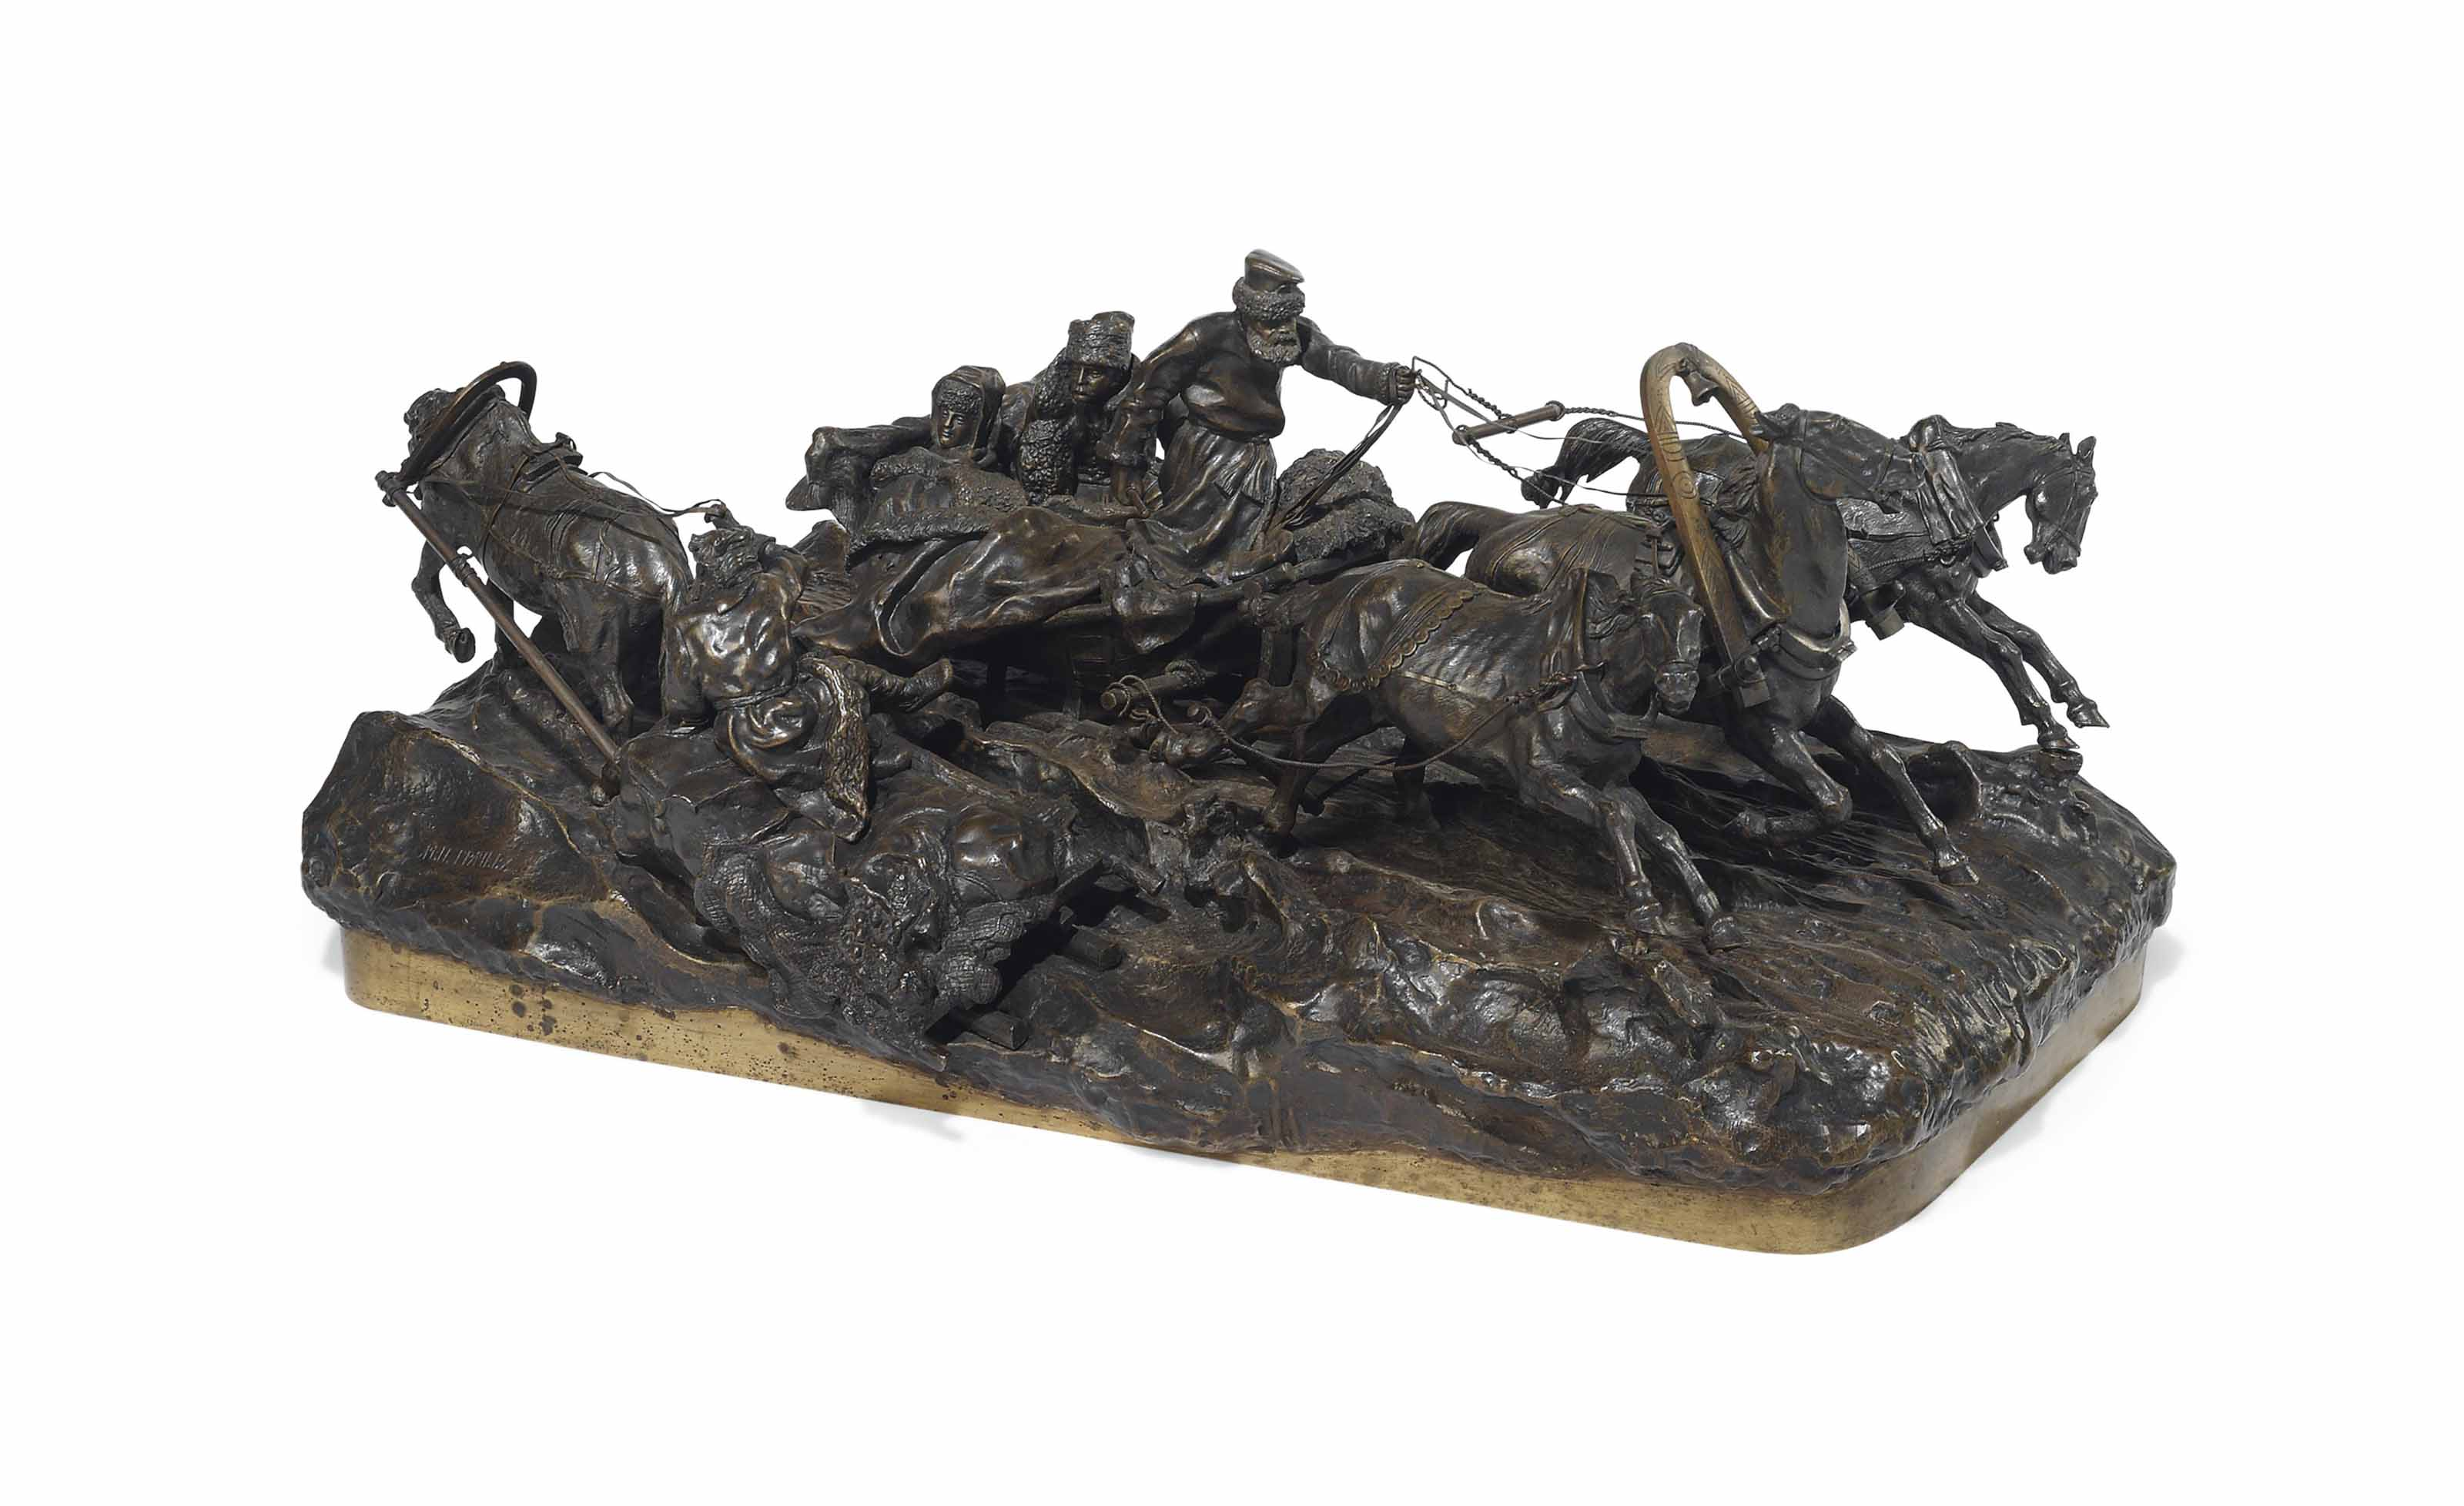 A RUSSIAN PATINATED BRONZE EQUESTRIAN GROUP OF A TROIKA PASSING A PEASANT SLEIGH